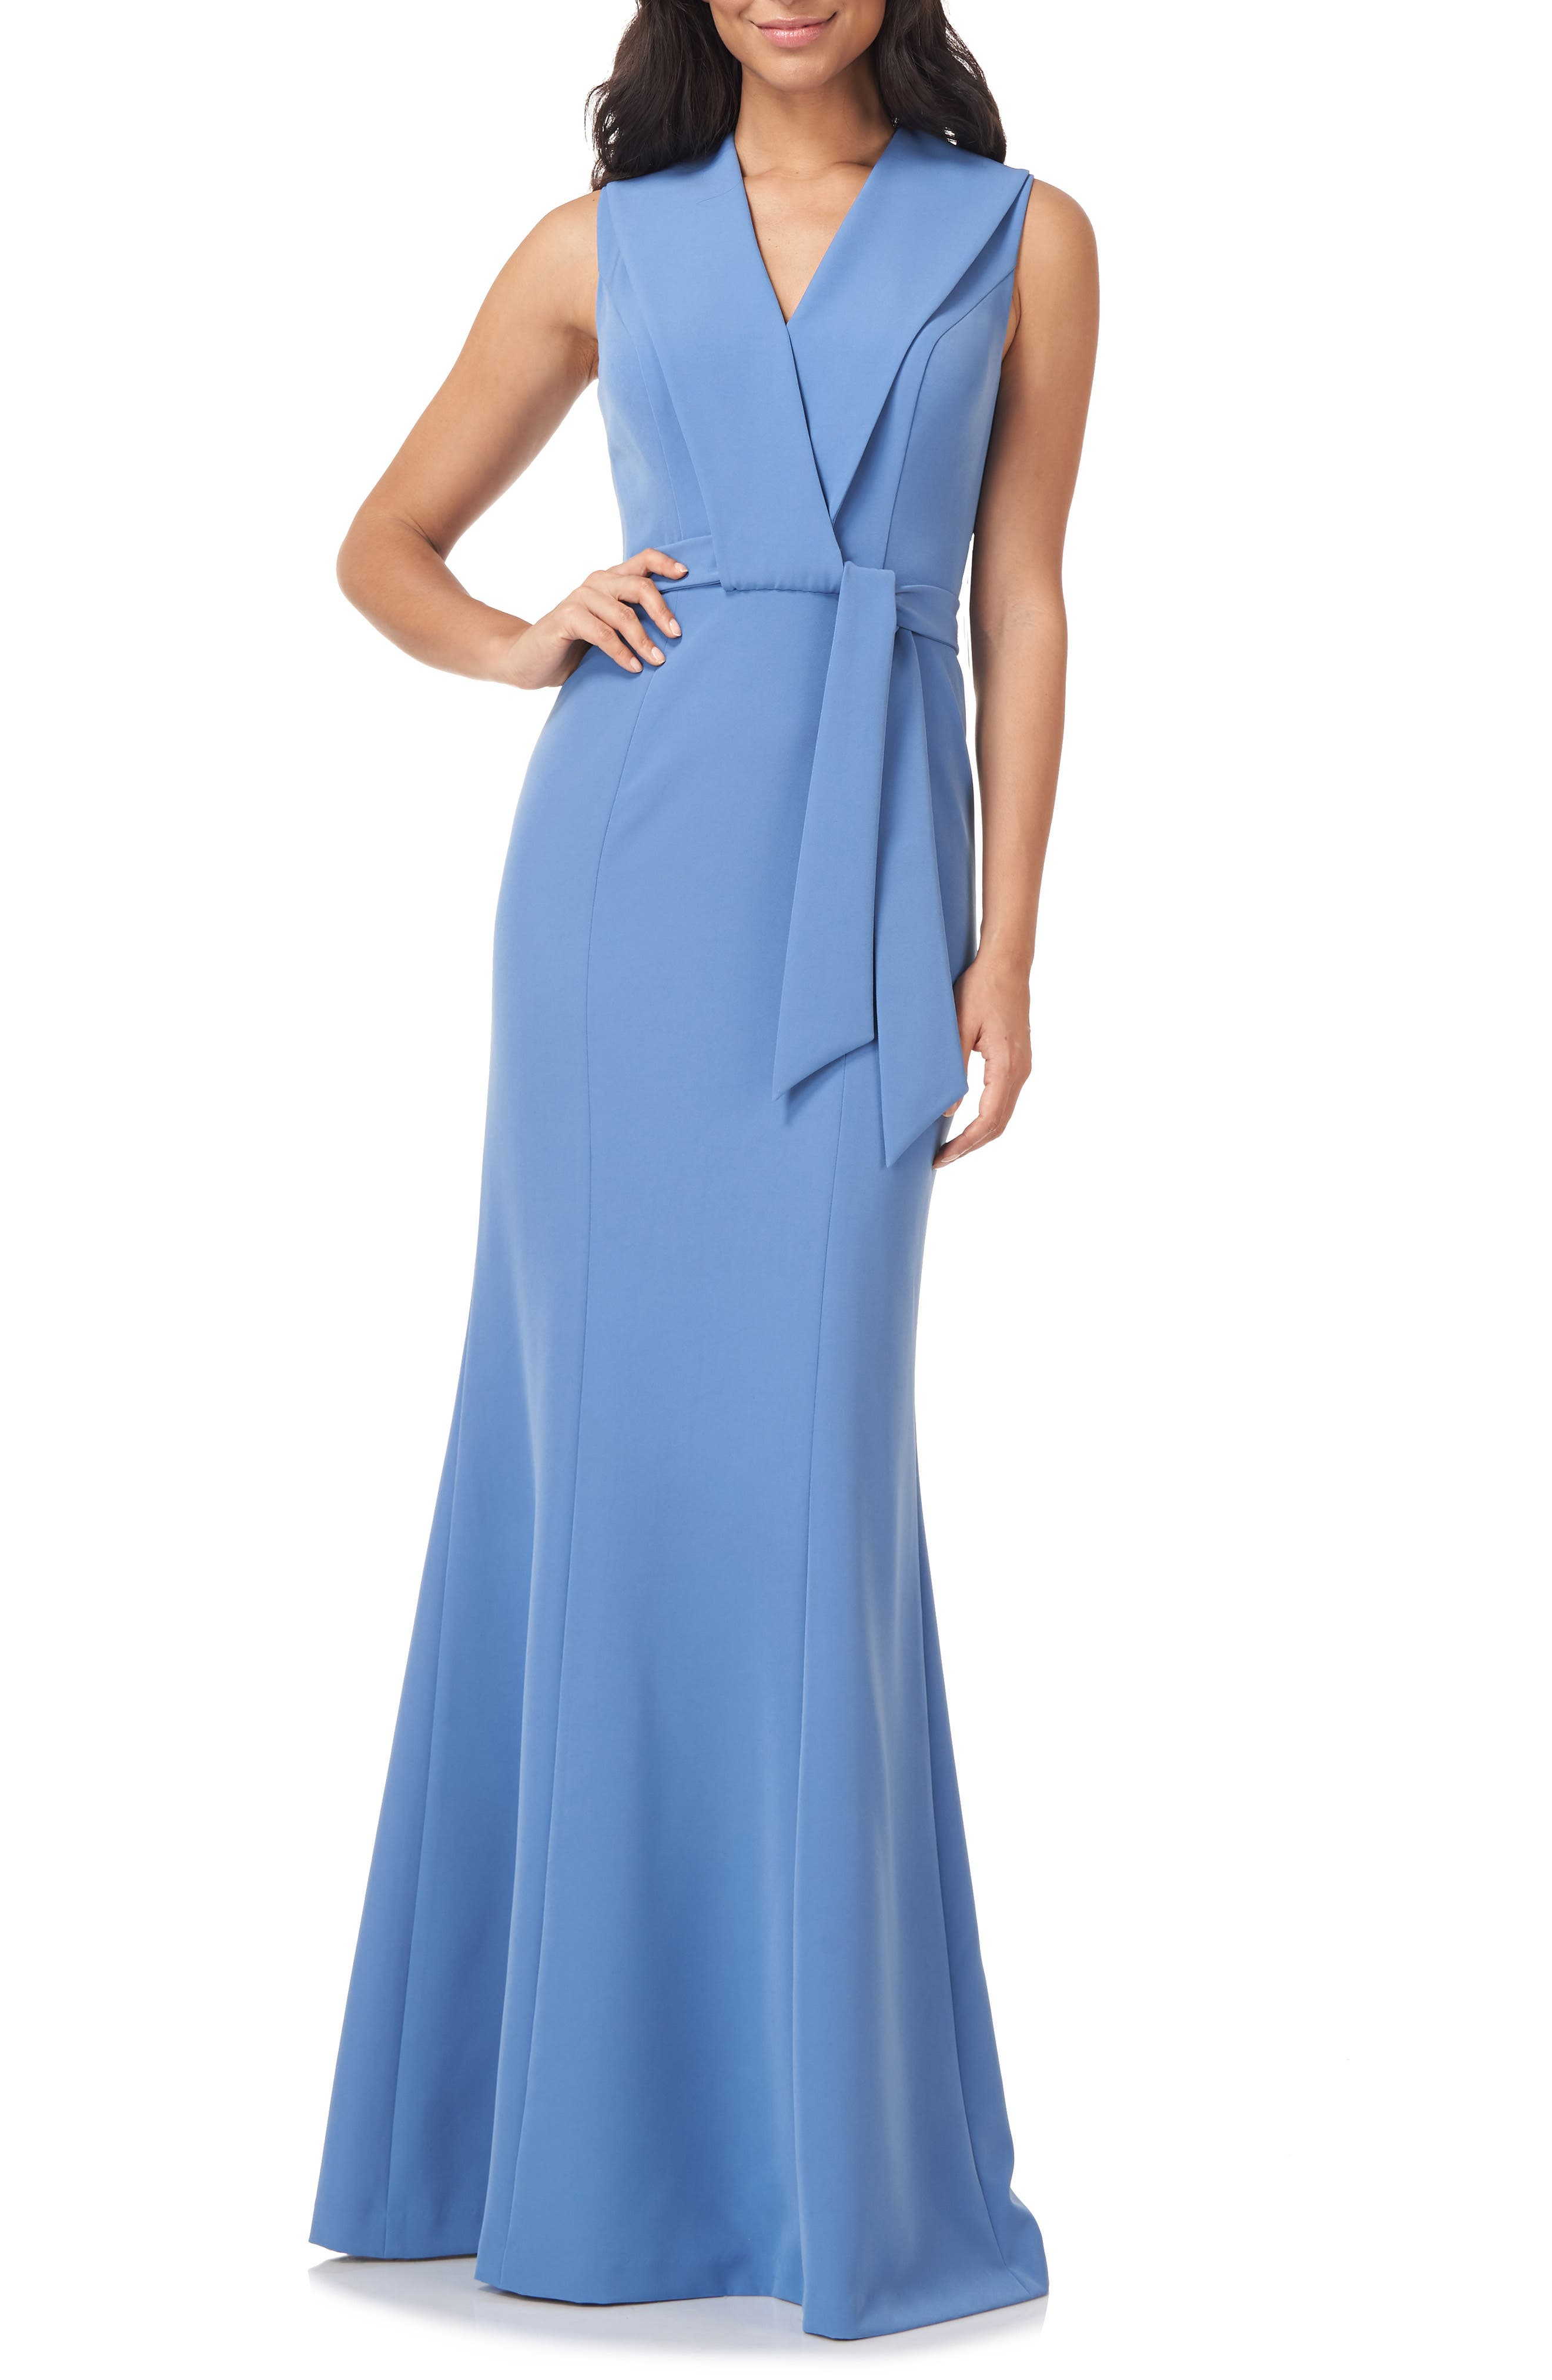 Cecily Belted Sleeveless Gown